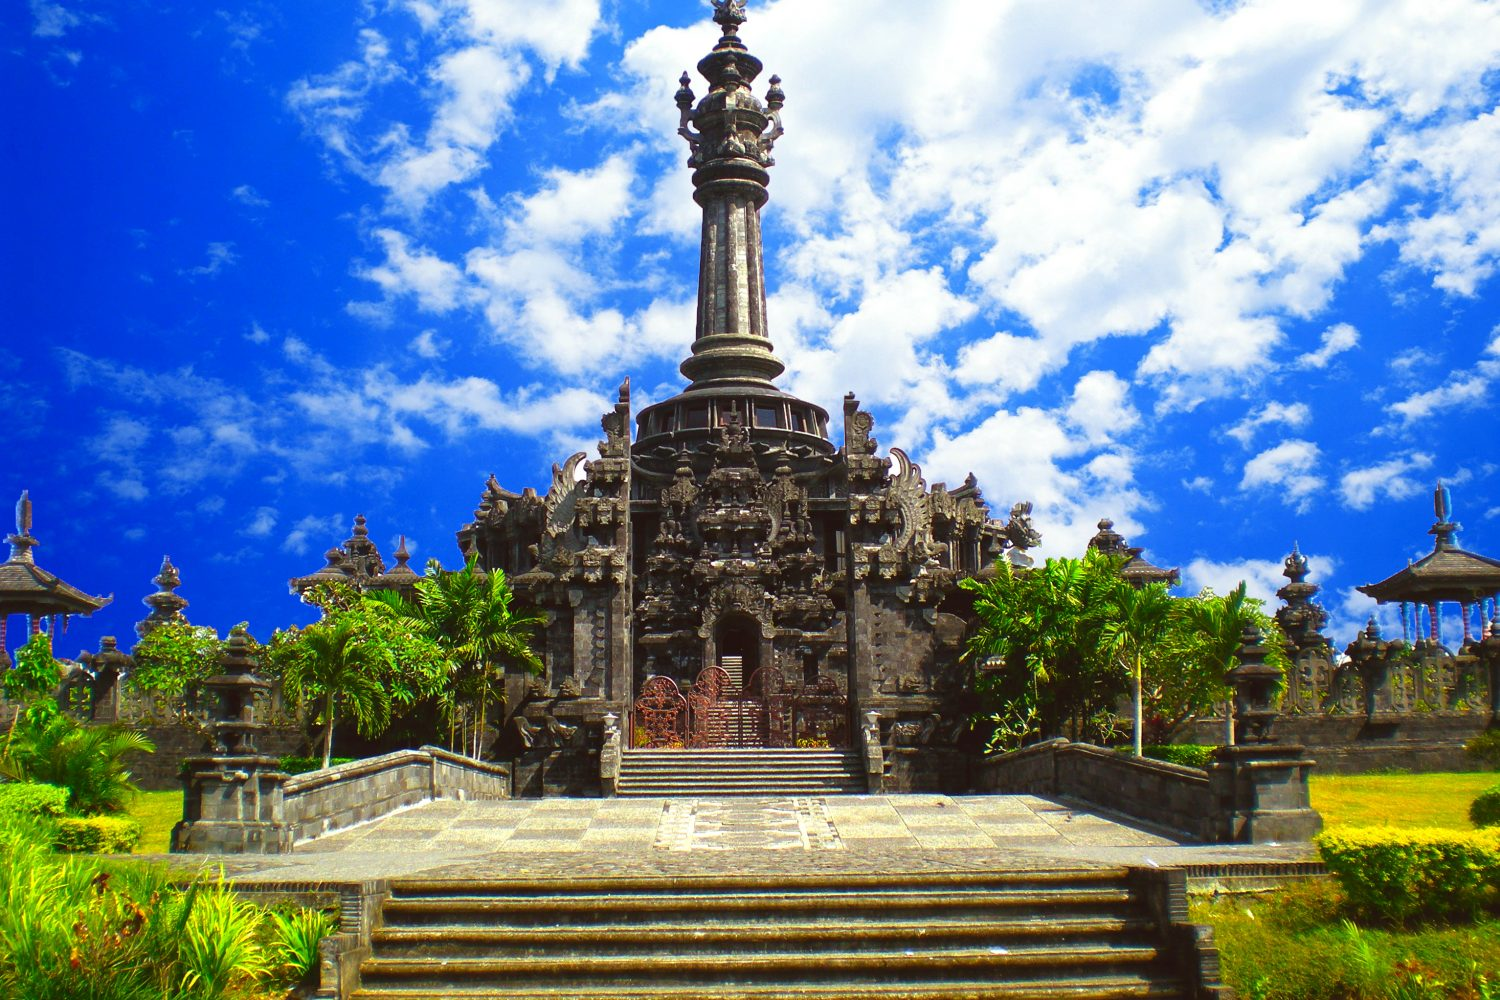 Bali Tour Packages, Book Bali Holiday Package at Best Price